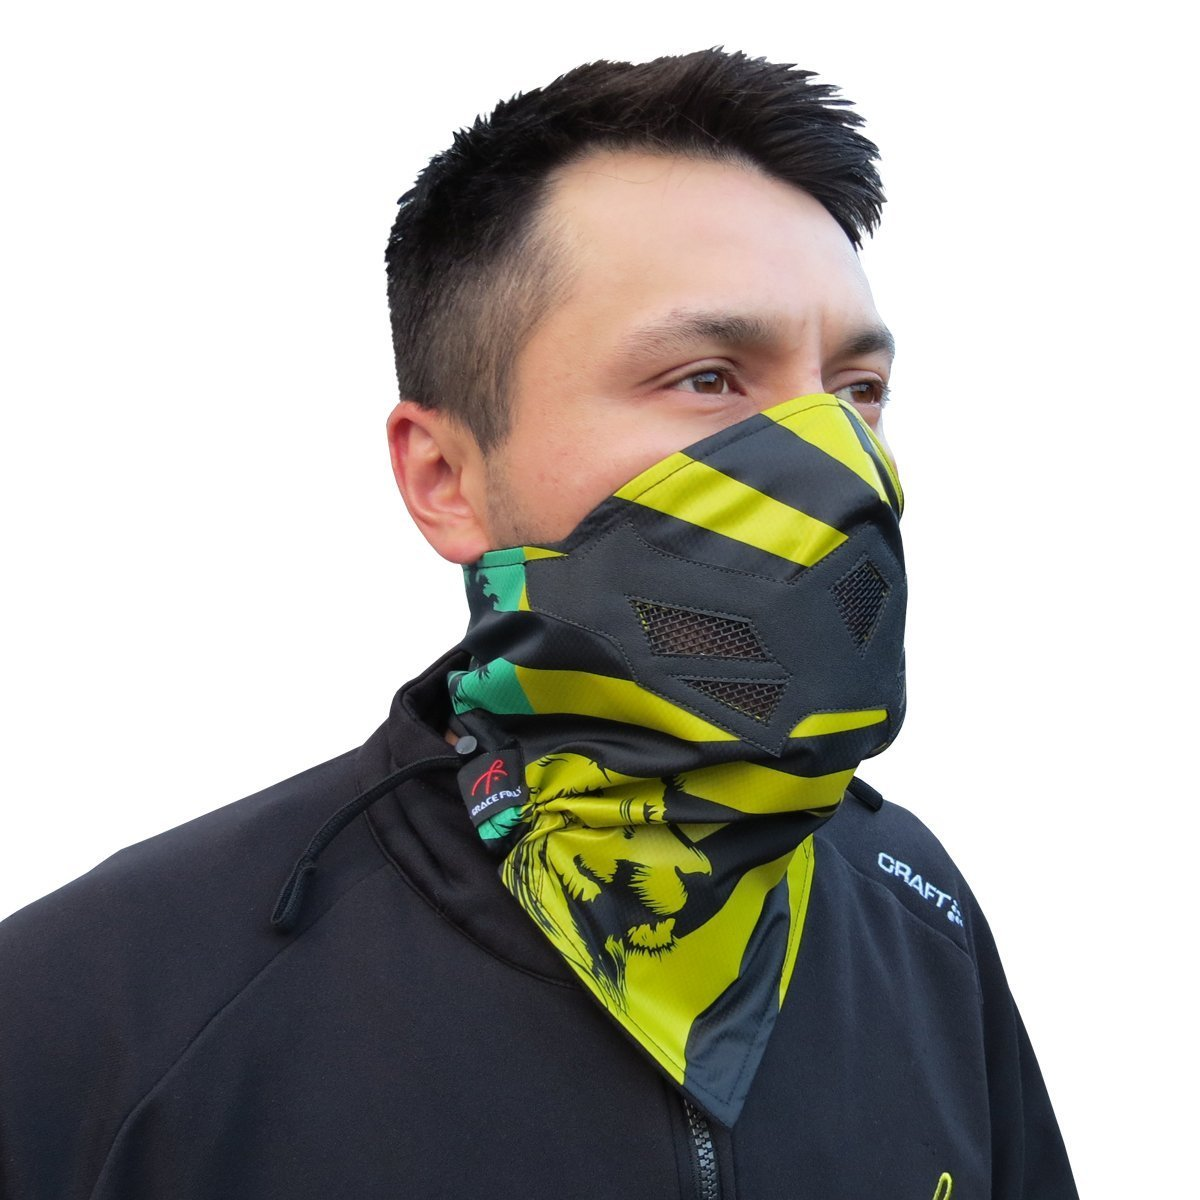 Half Face Mask for Cold Winter Weather. Use this Half Balaclava for Snowboarding, Ski, Motorcycle. (Many Colors) Motorcycle. (Many Colors) (Gray)